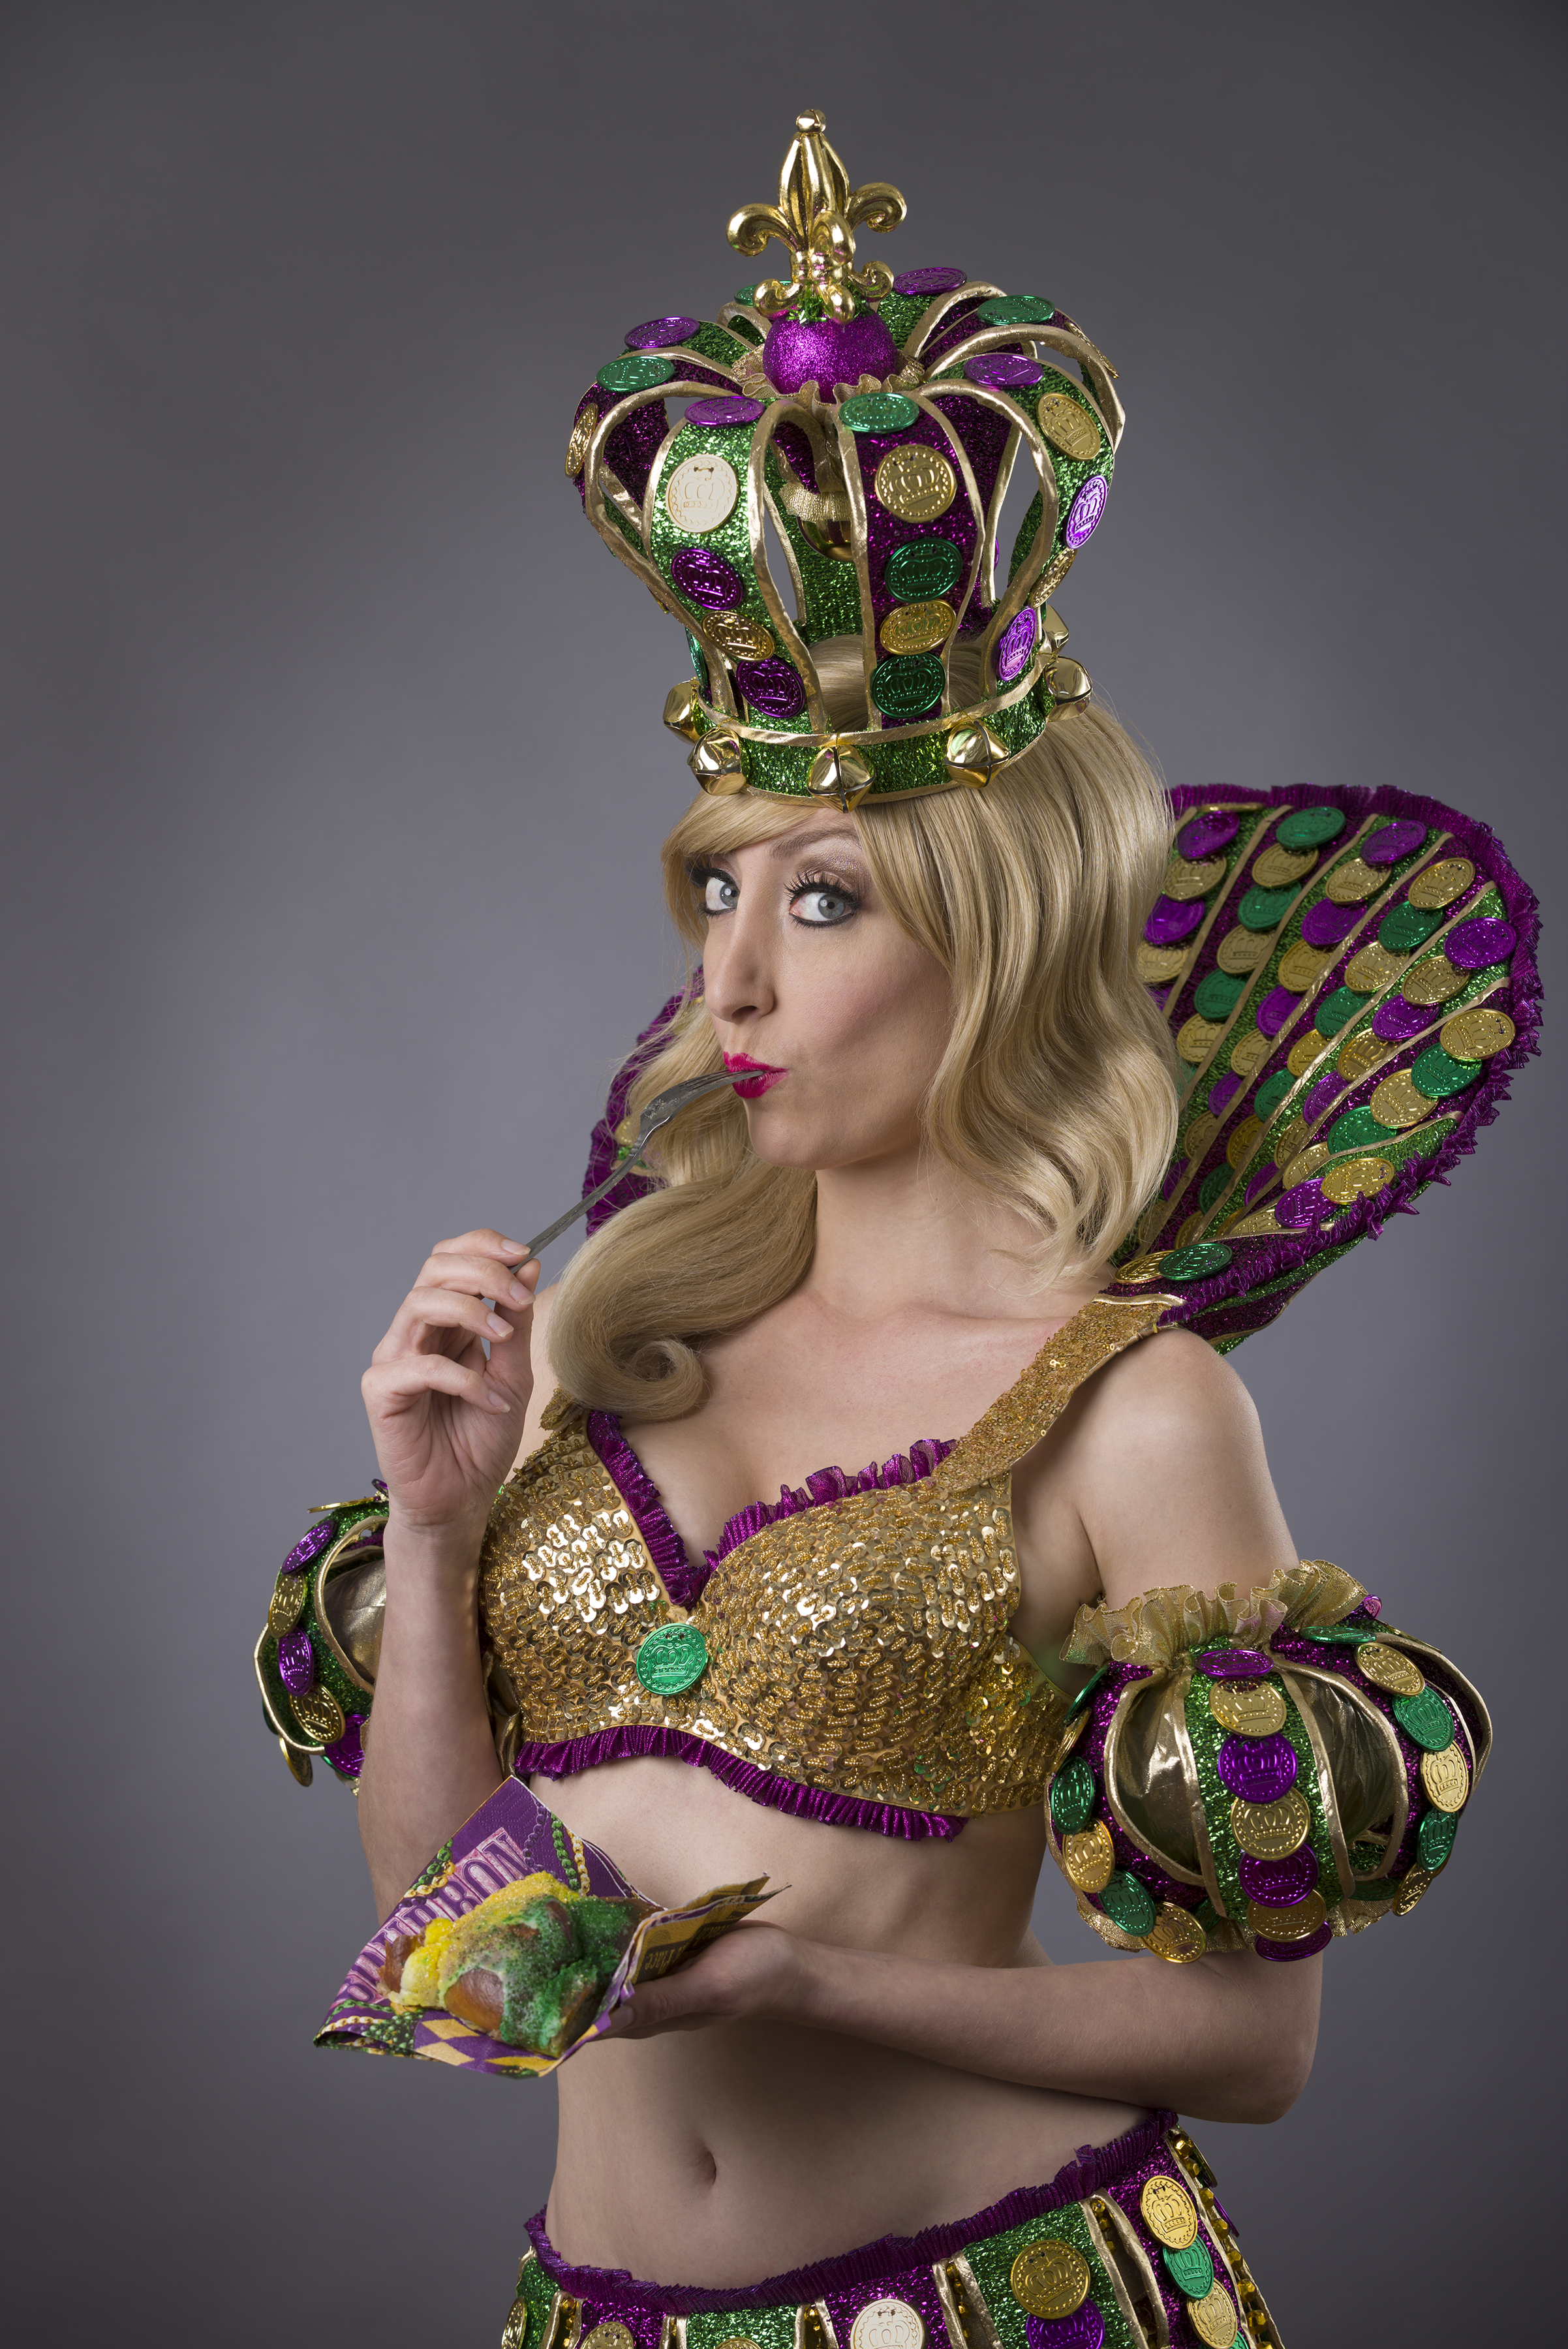 The Art of Tease: NOLA Burlesque